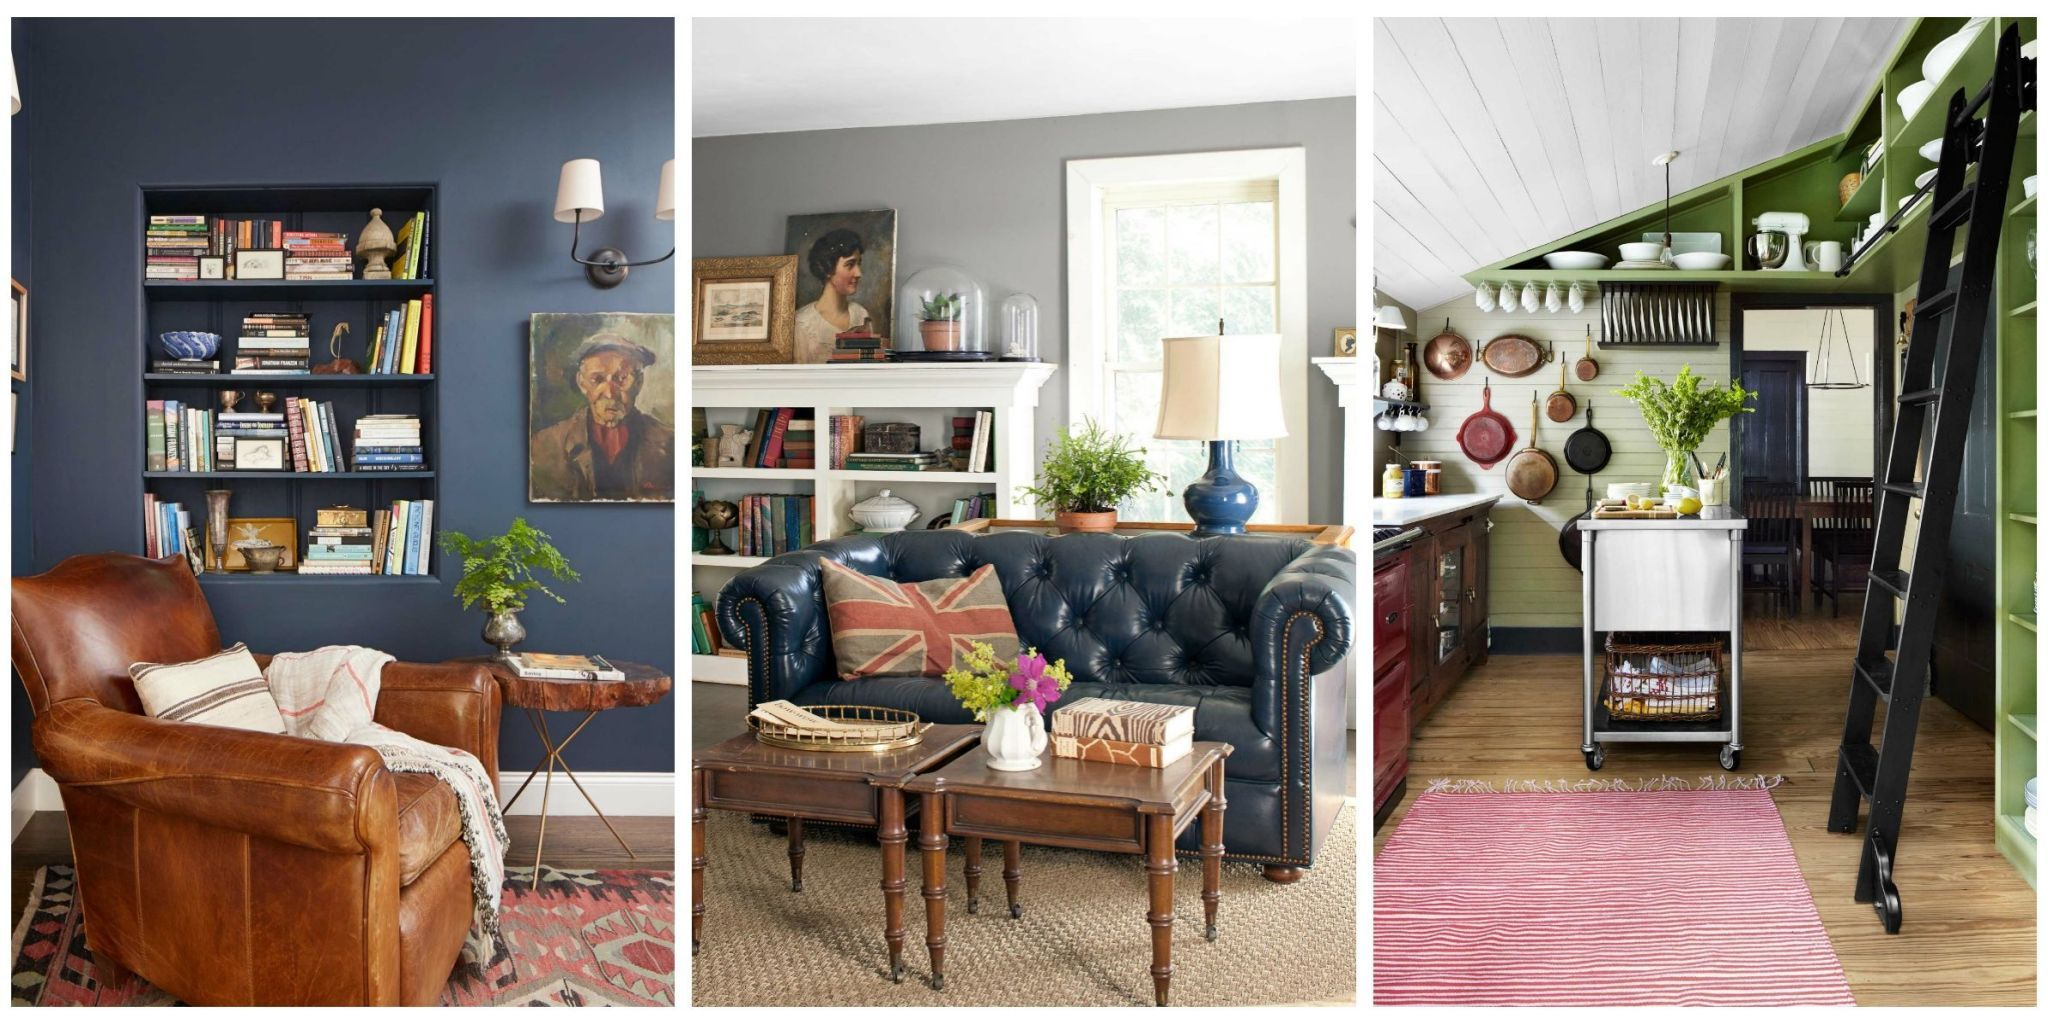 Give Your Home That Warm And Cozy Feeling With These Paint Ideas.